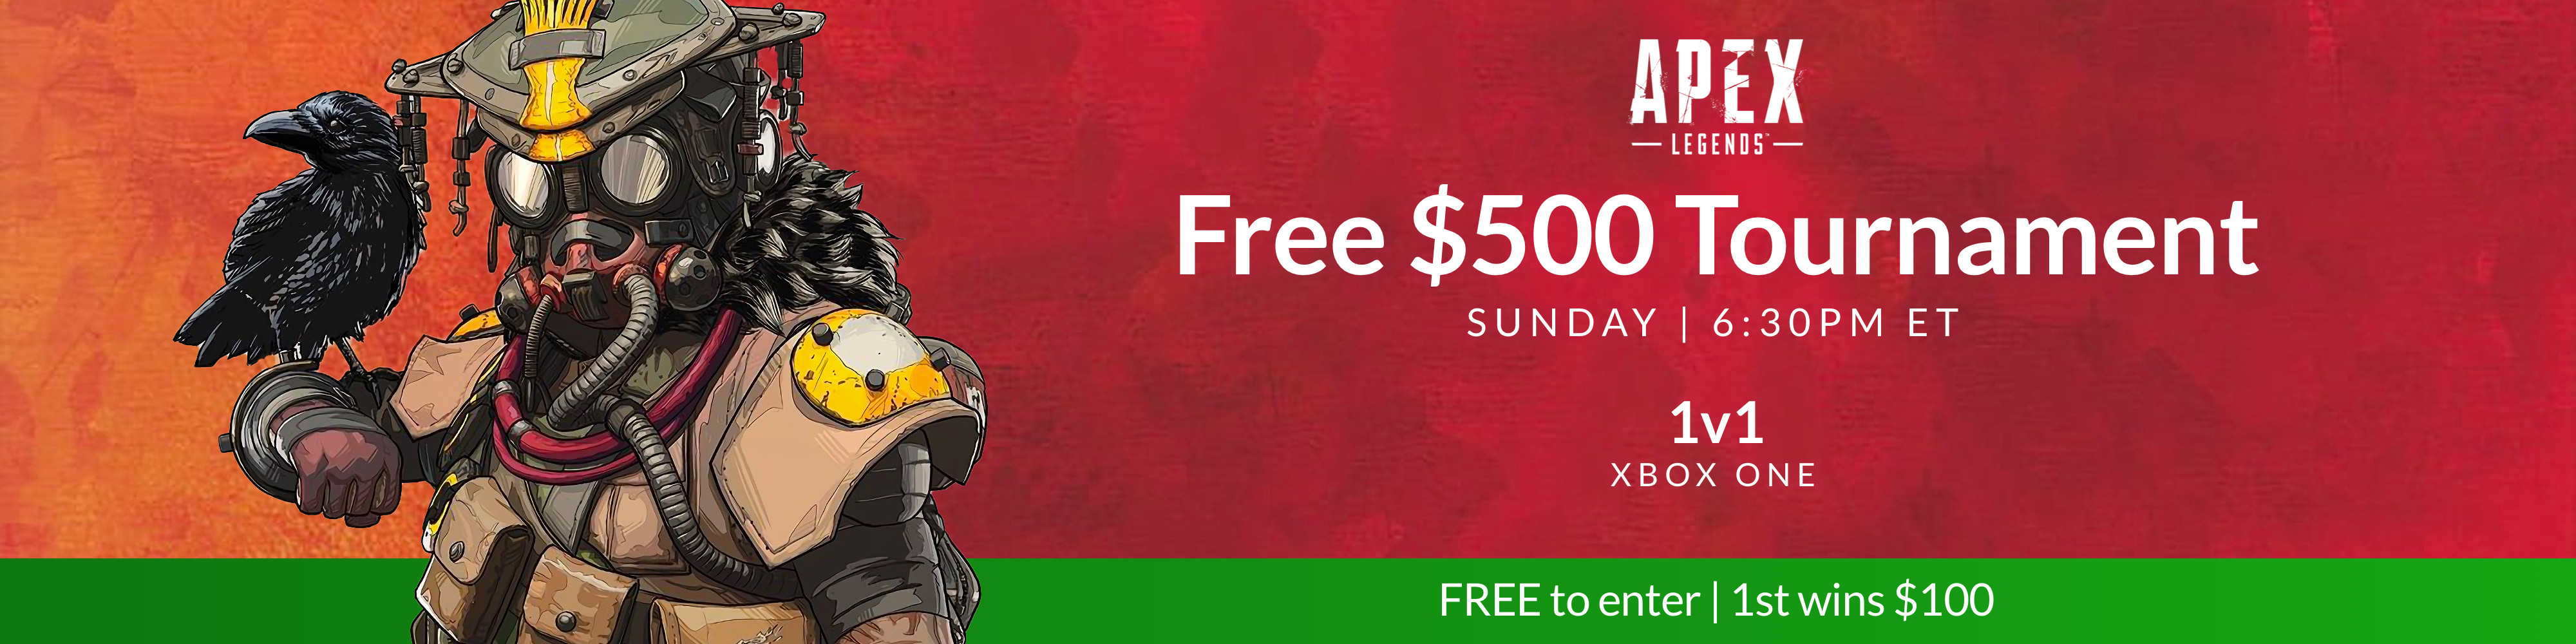 Players' Lounge - Sunday $500 Apex Free Tournament